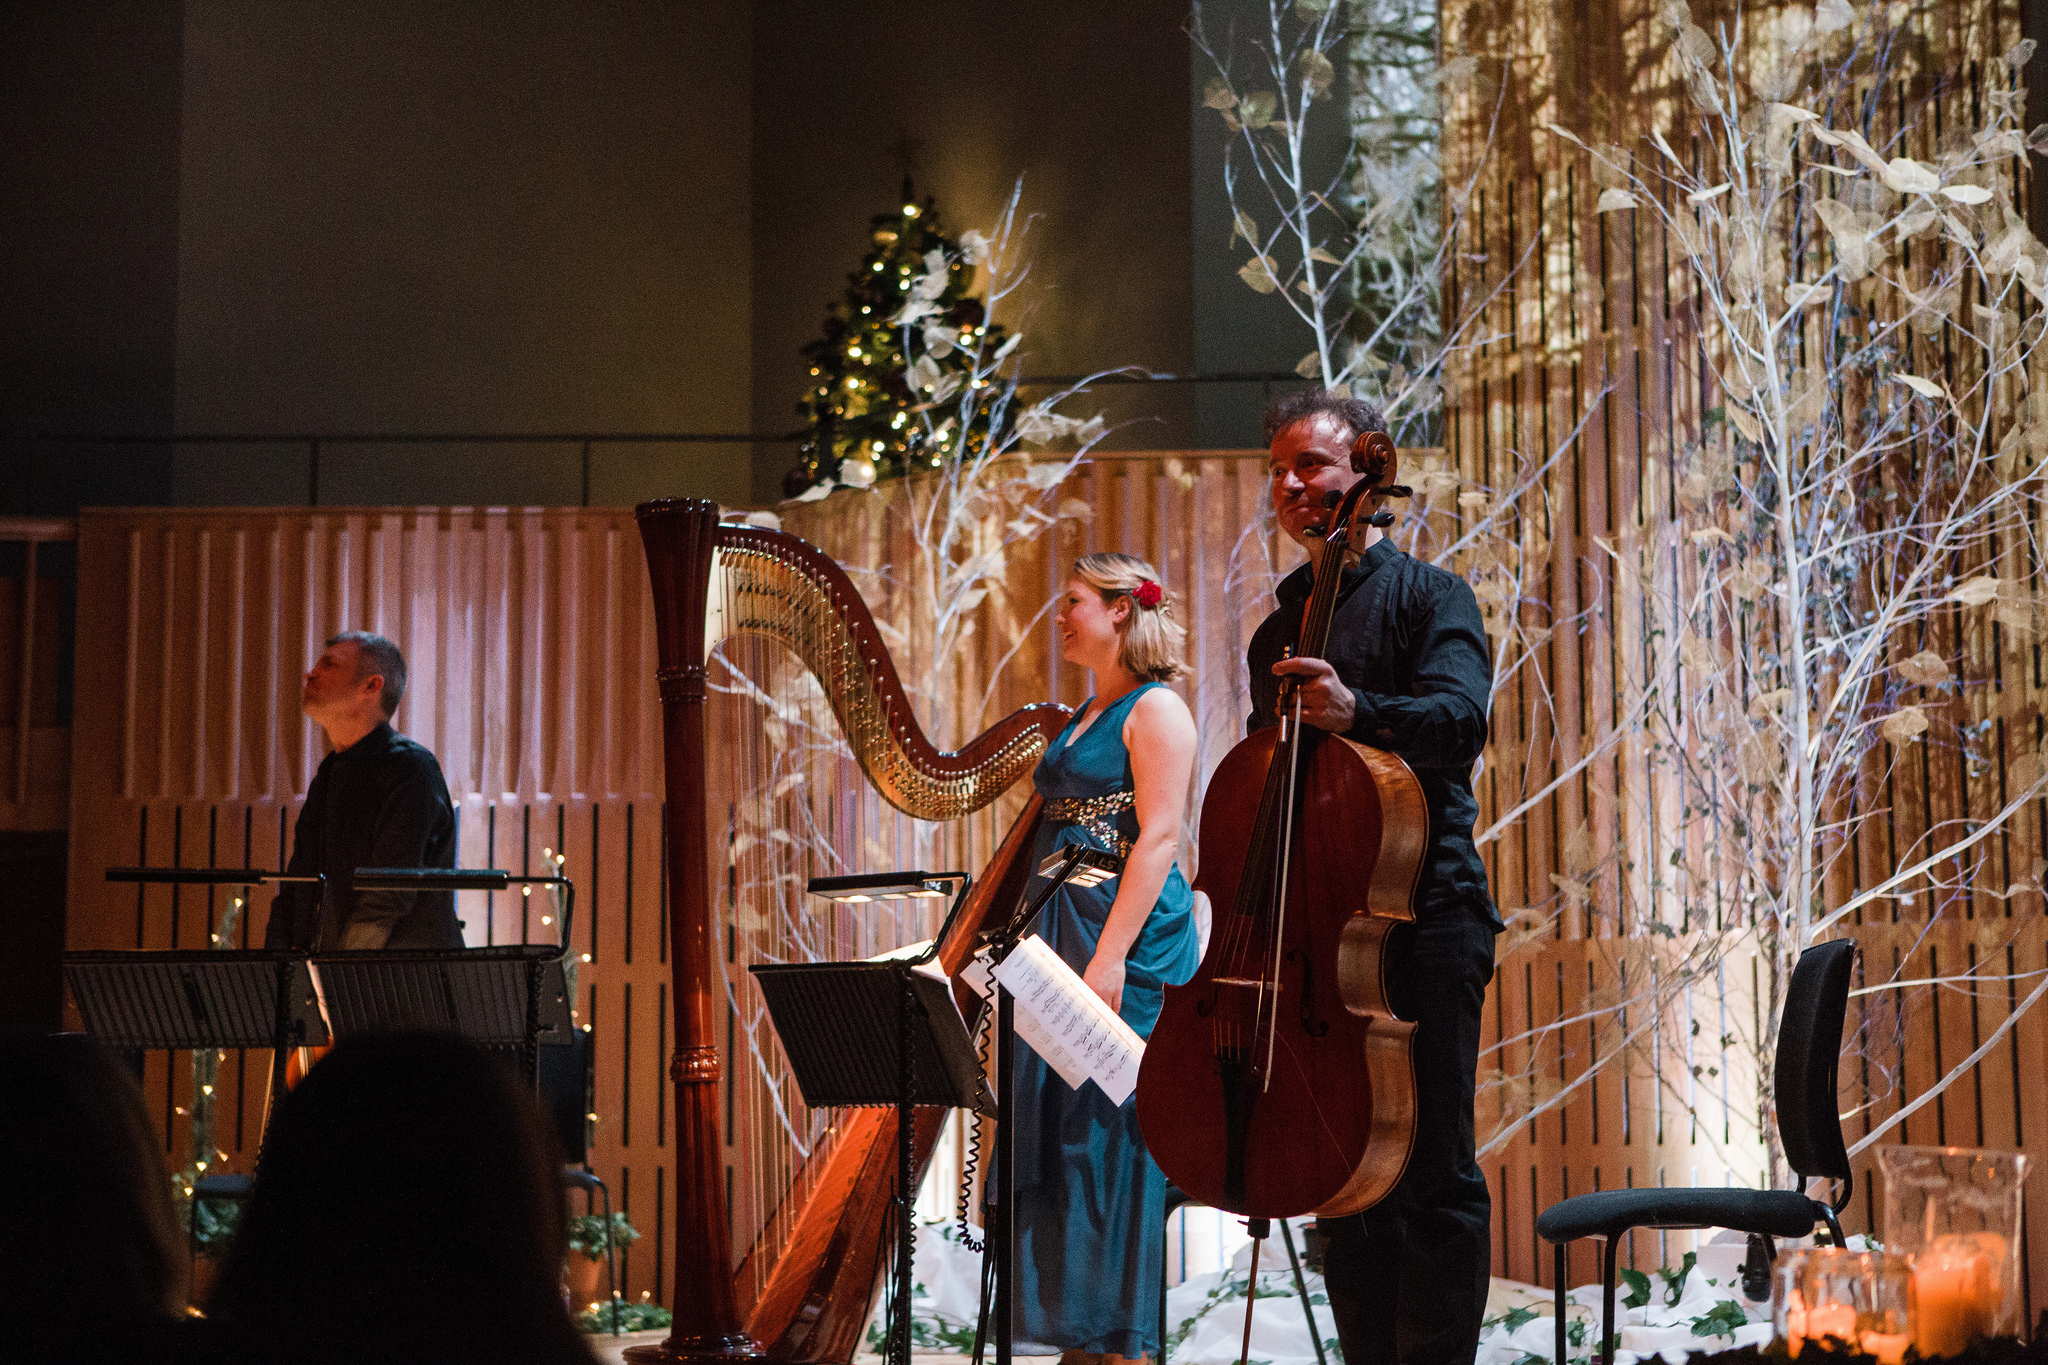 Cello player, Harp player and percussionist smile at audience from the stage at Opera North.